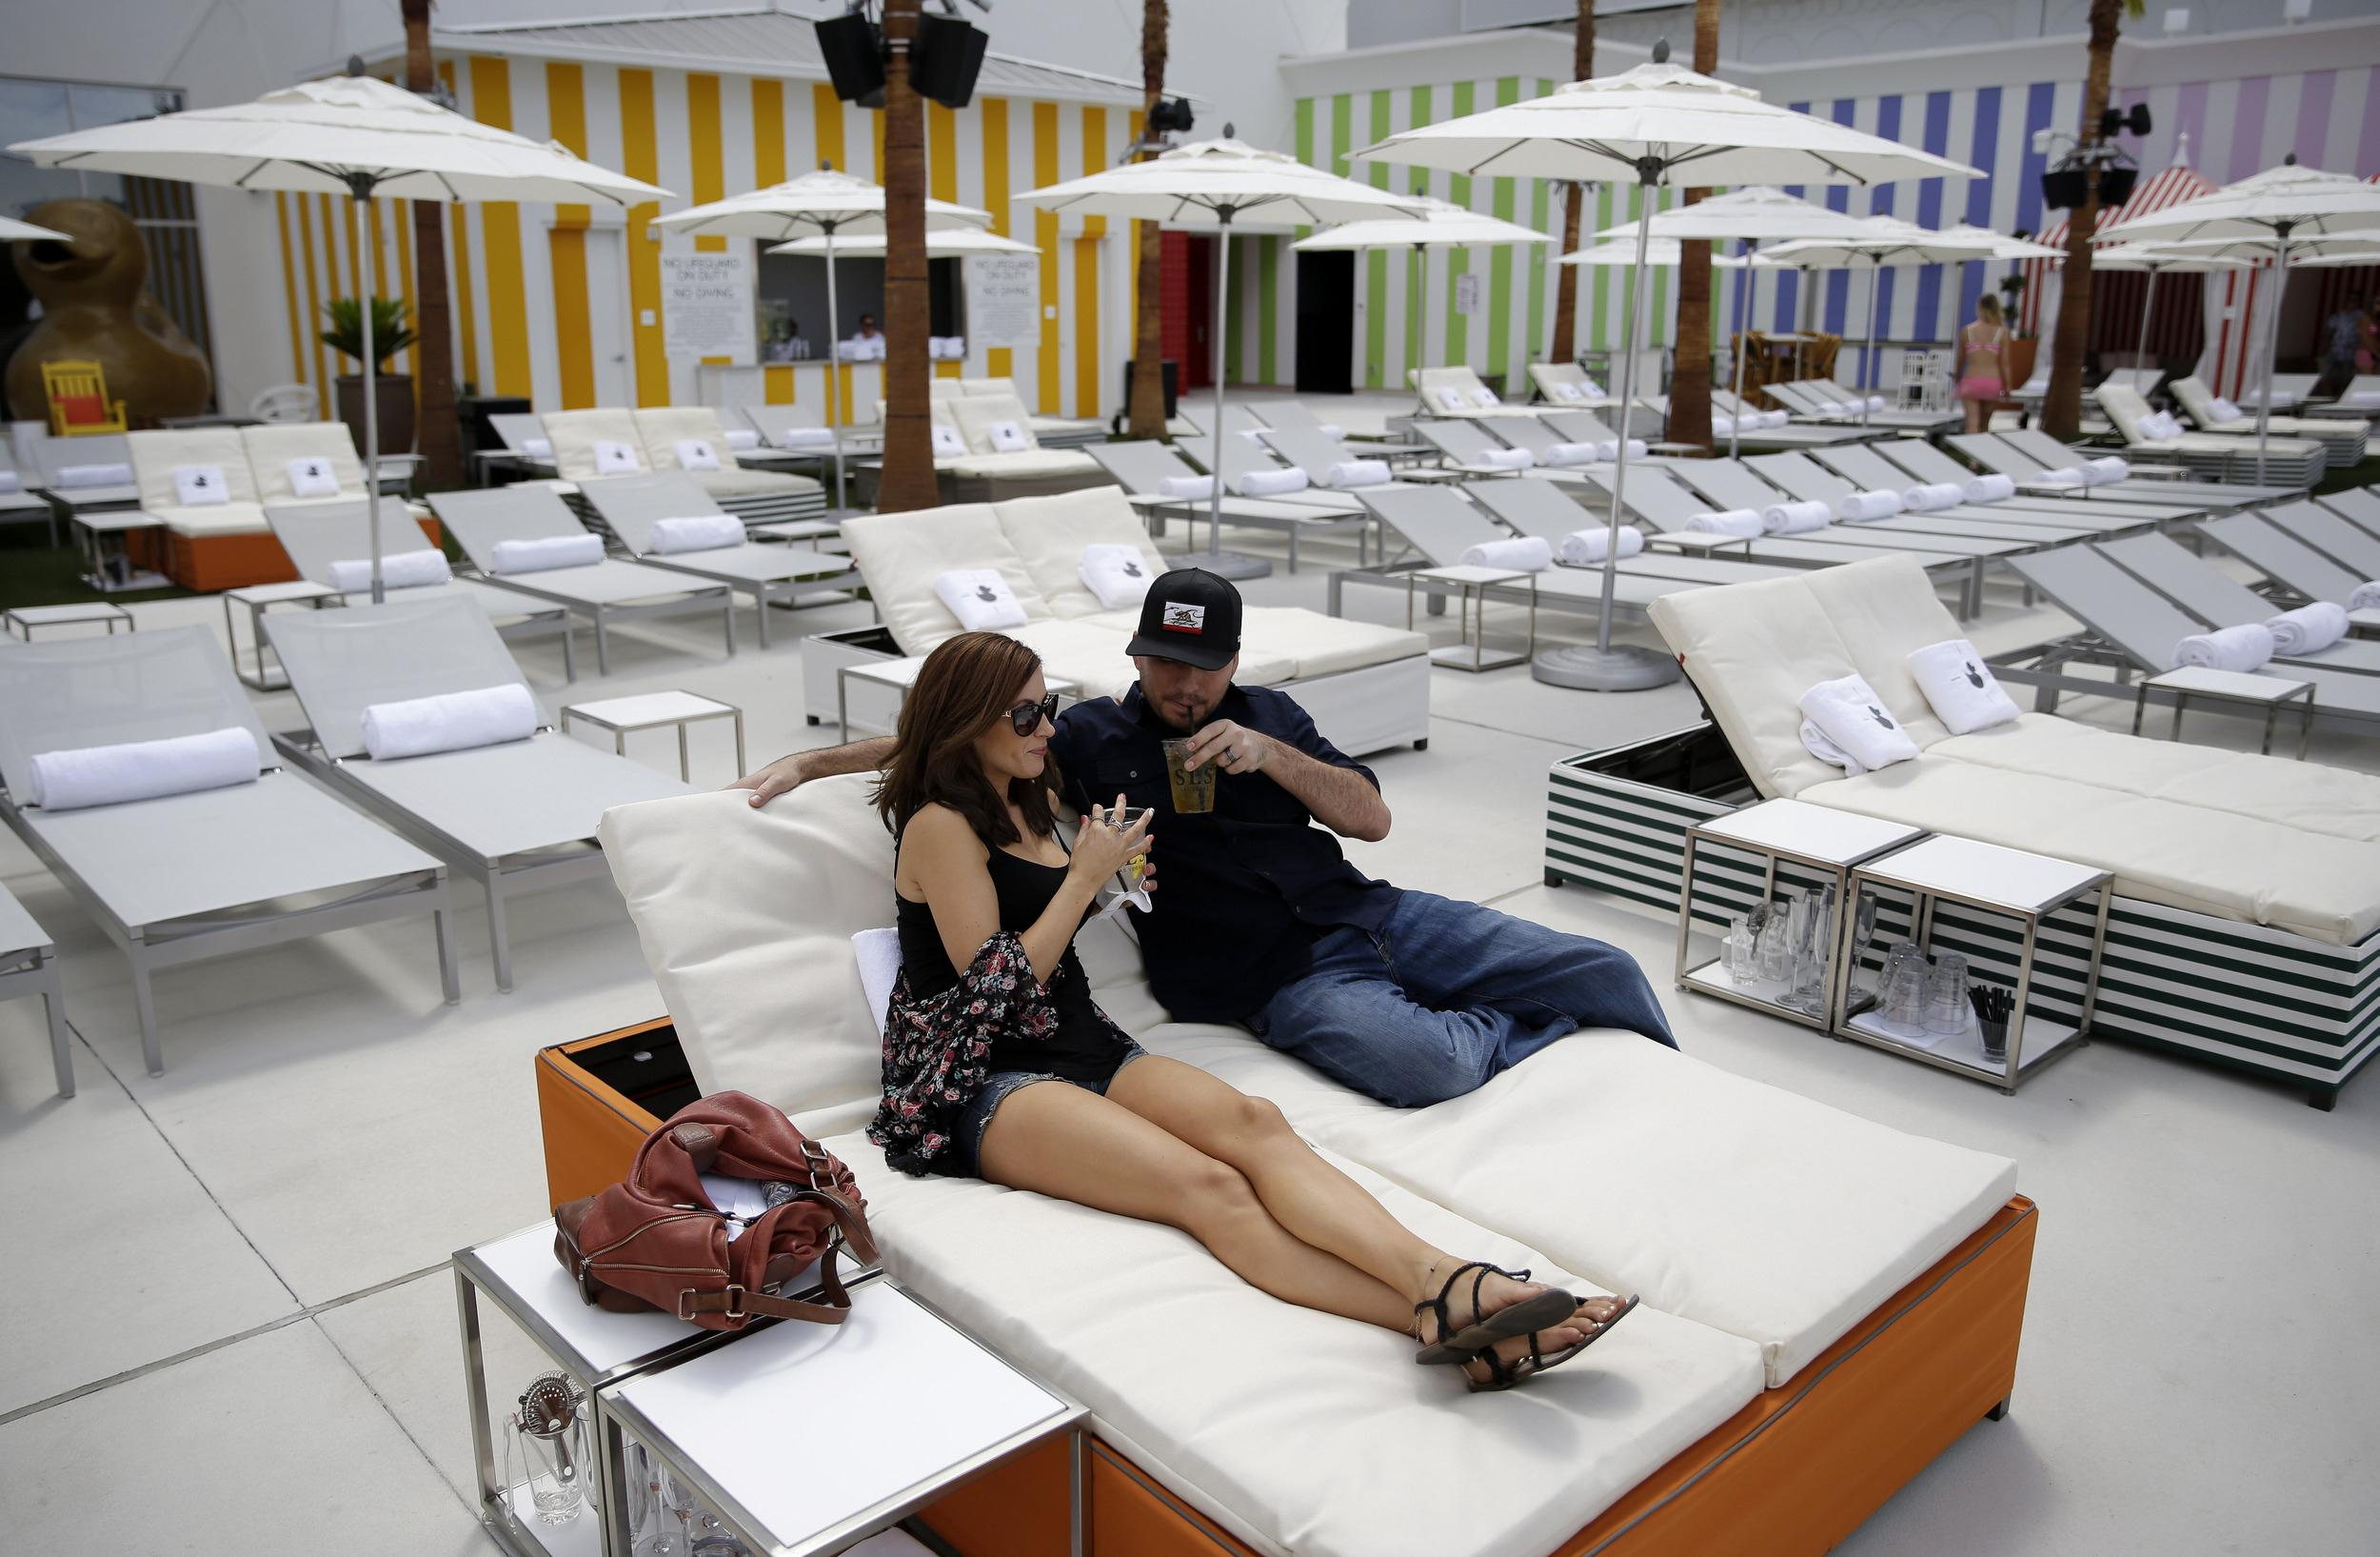 Image: Amelia Perez, left, and Fabian Perez lounge by the pool at the SLS Las Vegas in Las Vegas